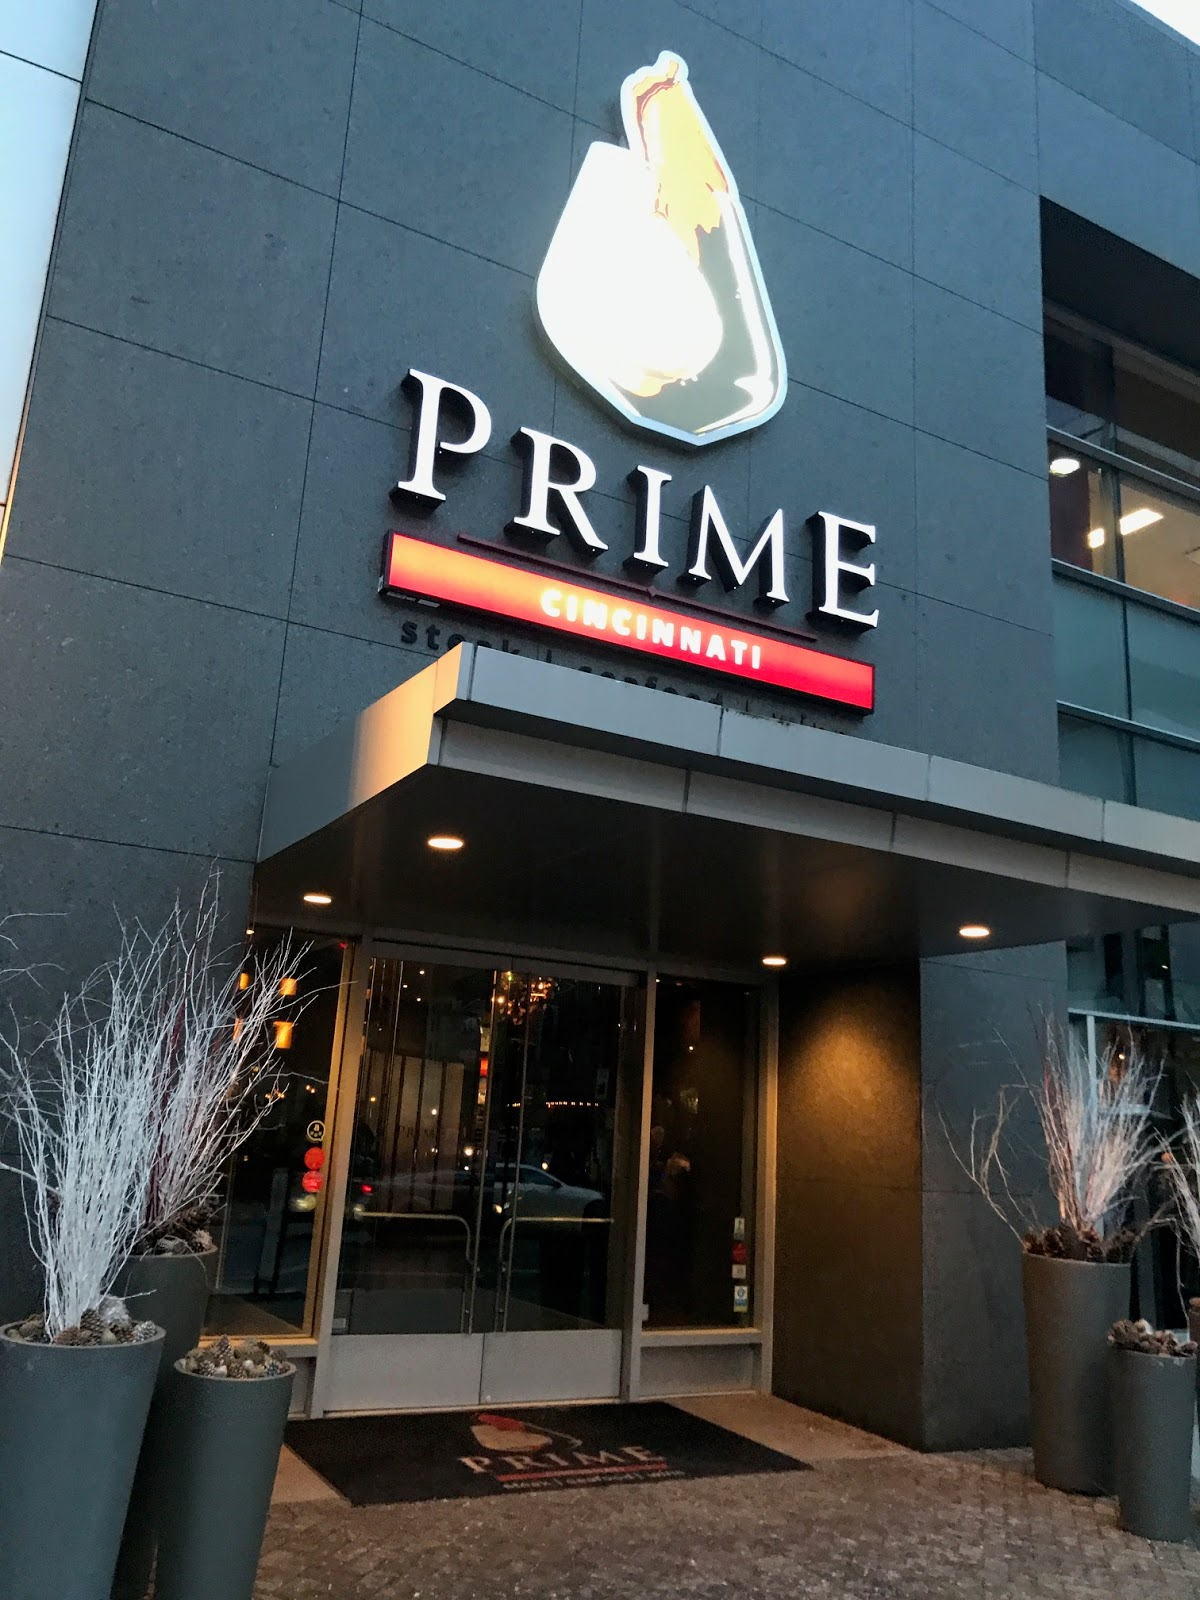 So We Headed To Prime Cincinnati Right Across The Street They Were Kind Enough Let Us Try Out Their Pre Theater Menu Before Show